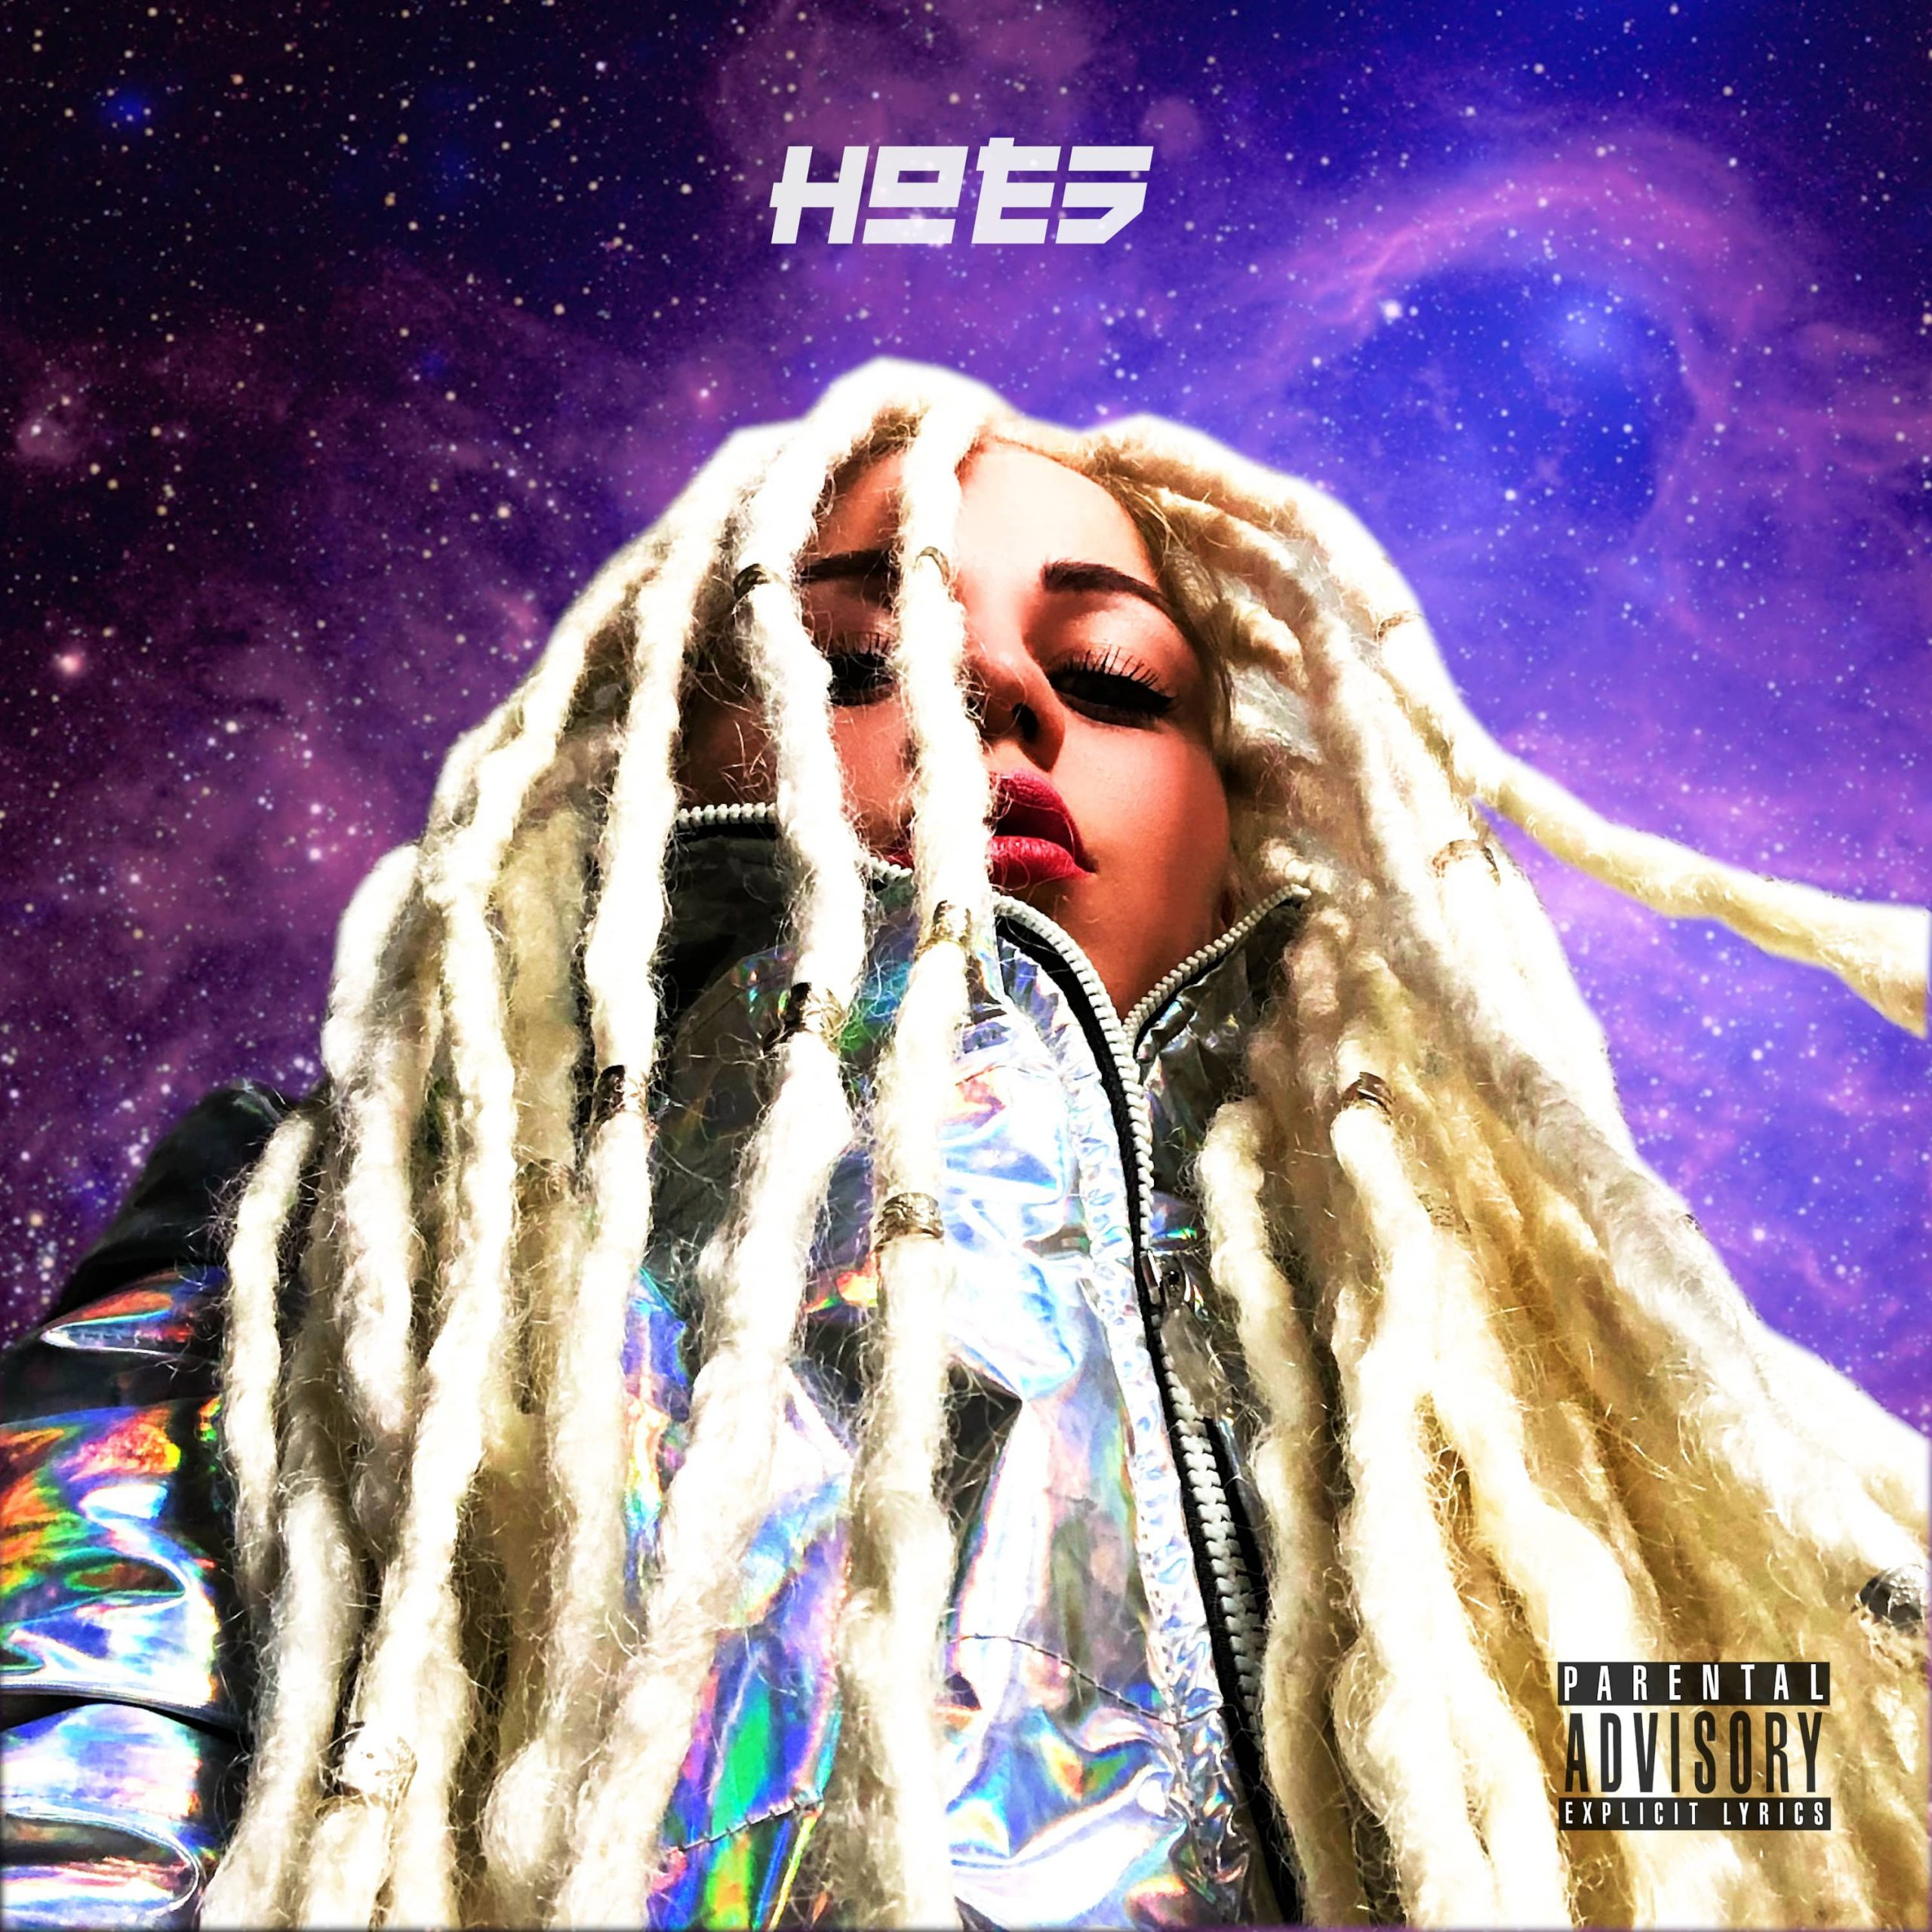 ÒLAH BLISS // Hoes - single cover